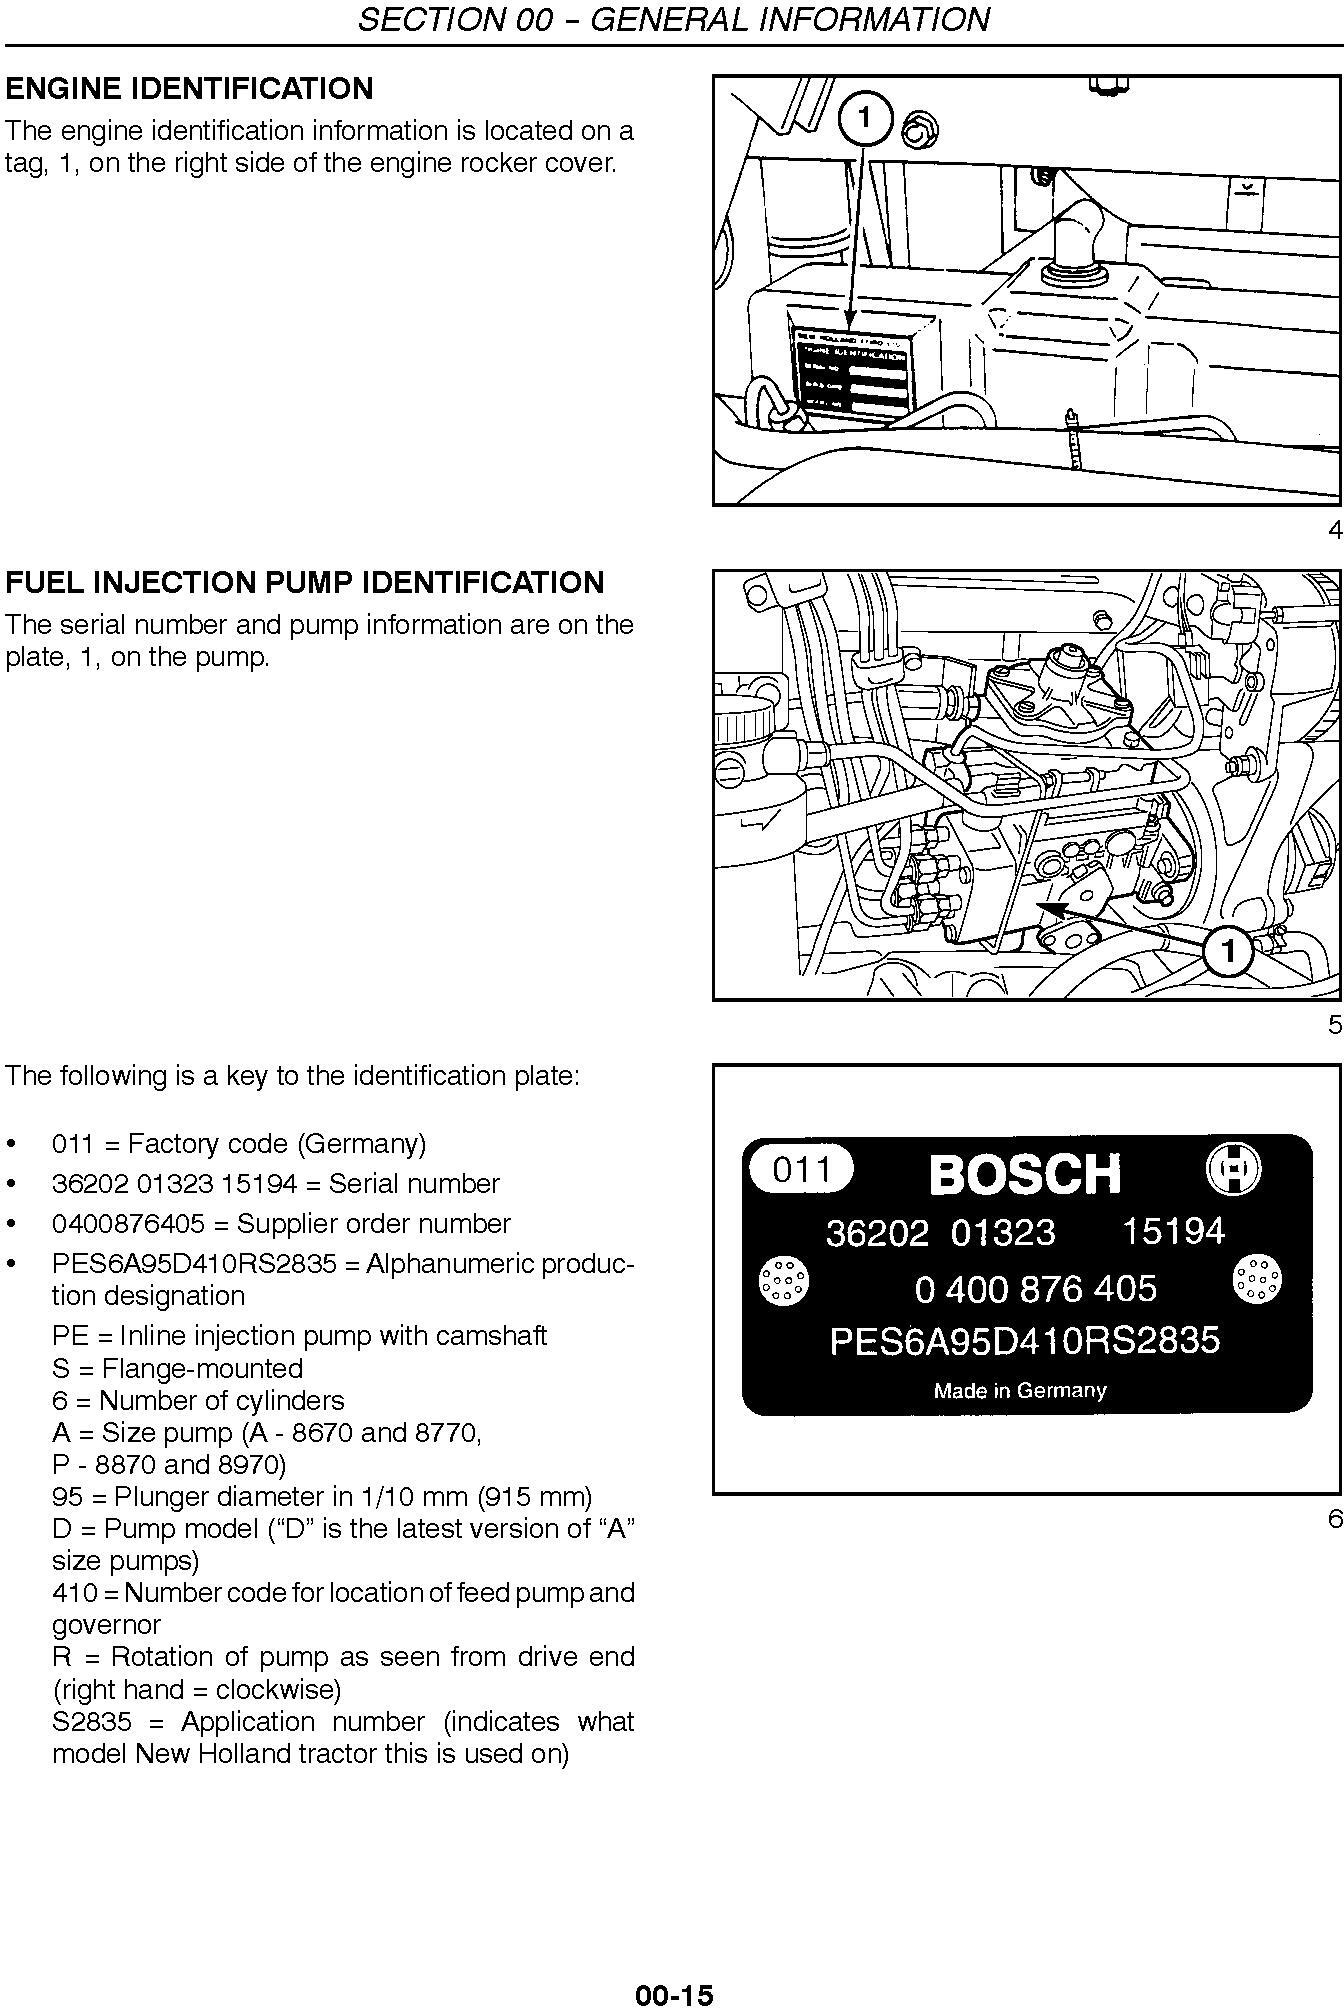 New Holland TV140 Tractor Complete Service Manual - 1